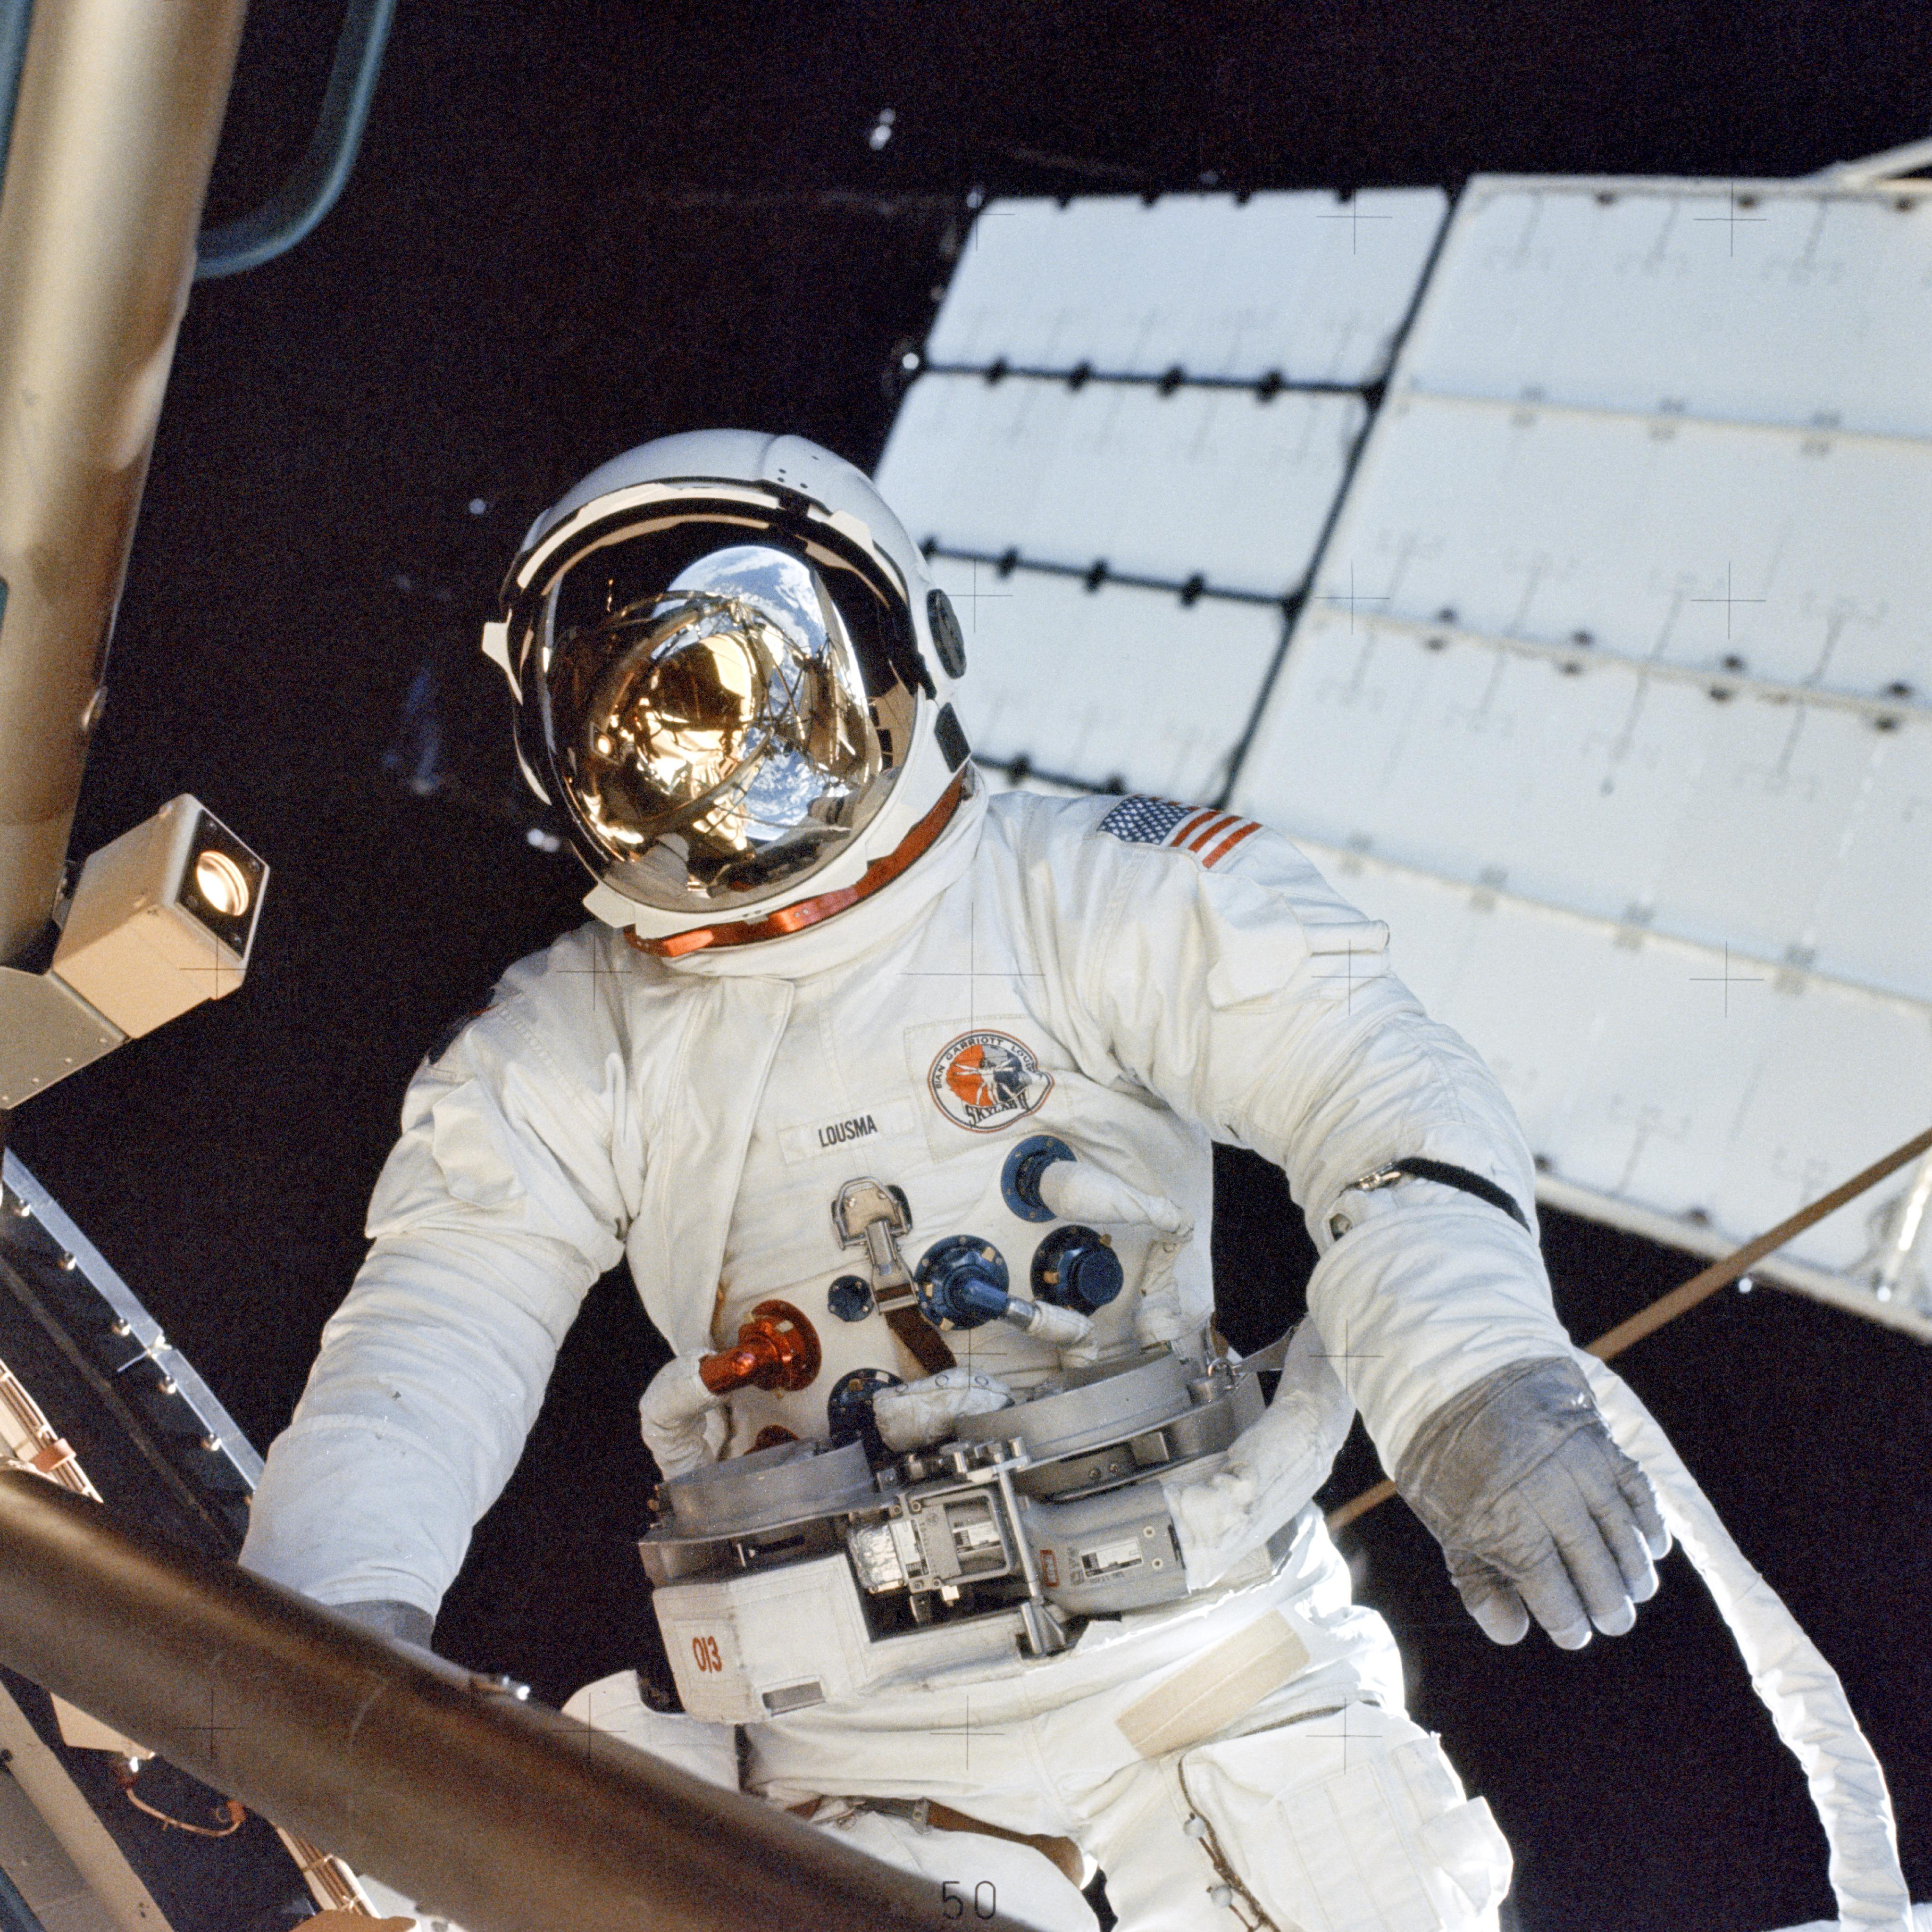 an astronaut in space will observe the sky as - photo #41